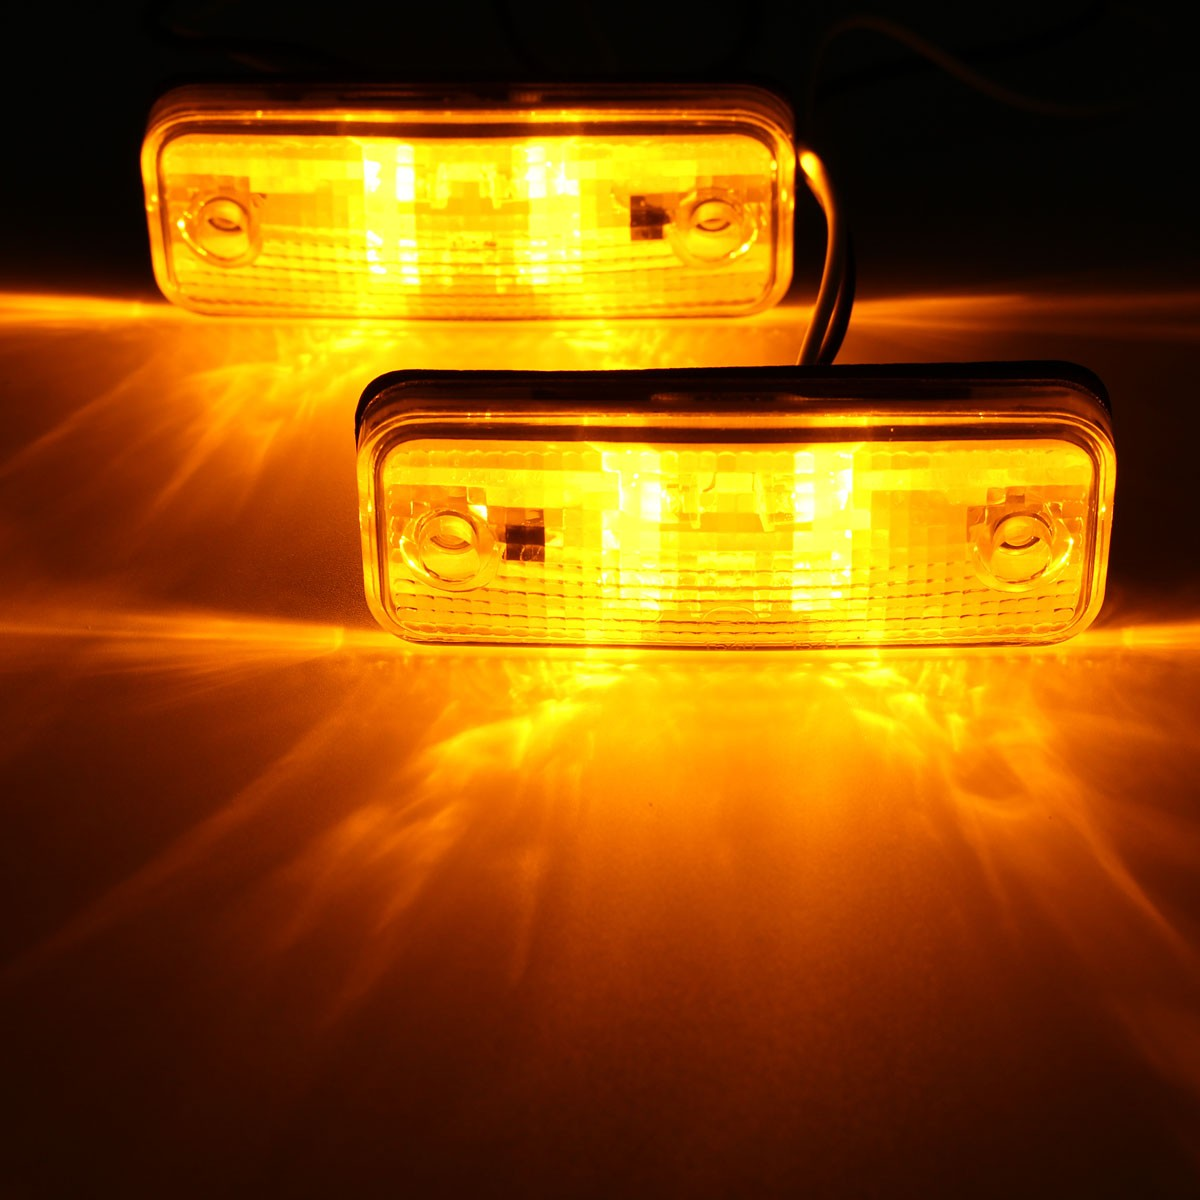 2pcs 4 LED Side Marker Light Indicator Lamp Bus Truck Trailer Lorry Caravan 10~30V E8 2016 hot 1pc 12v 6 smd led car bus truck trailer lorry side marker indicator light side lamp new dropping shipping high quality